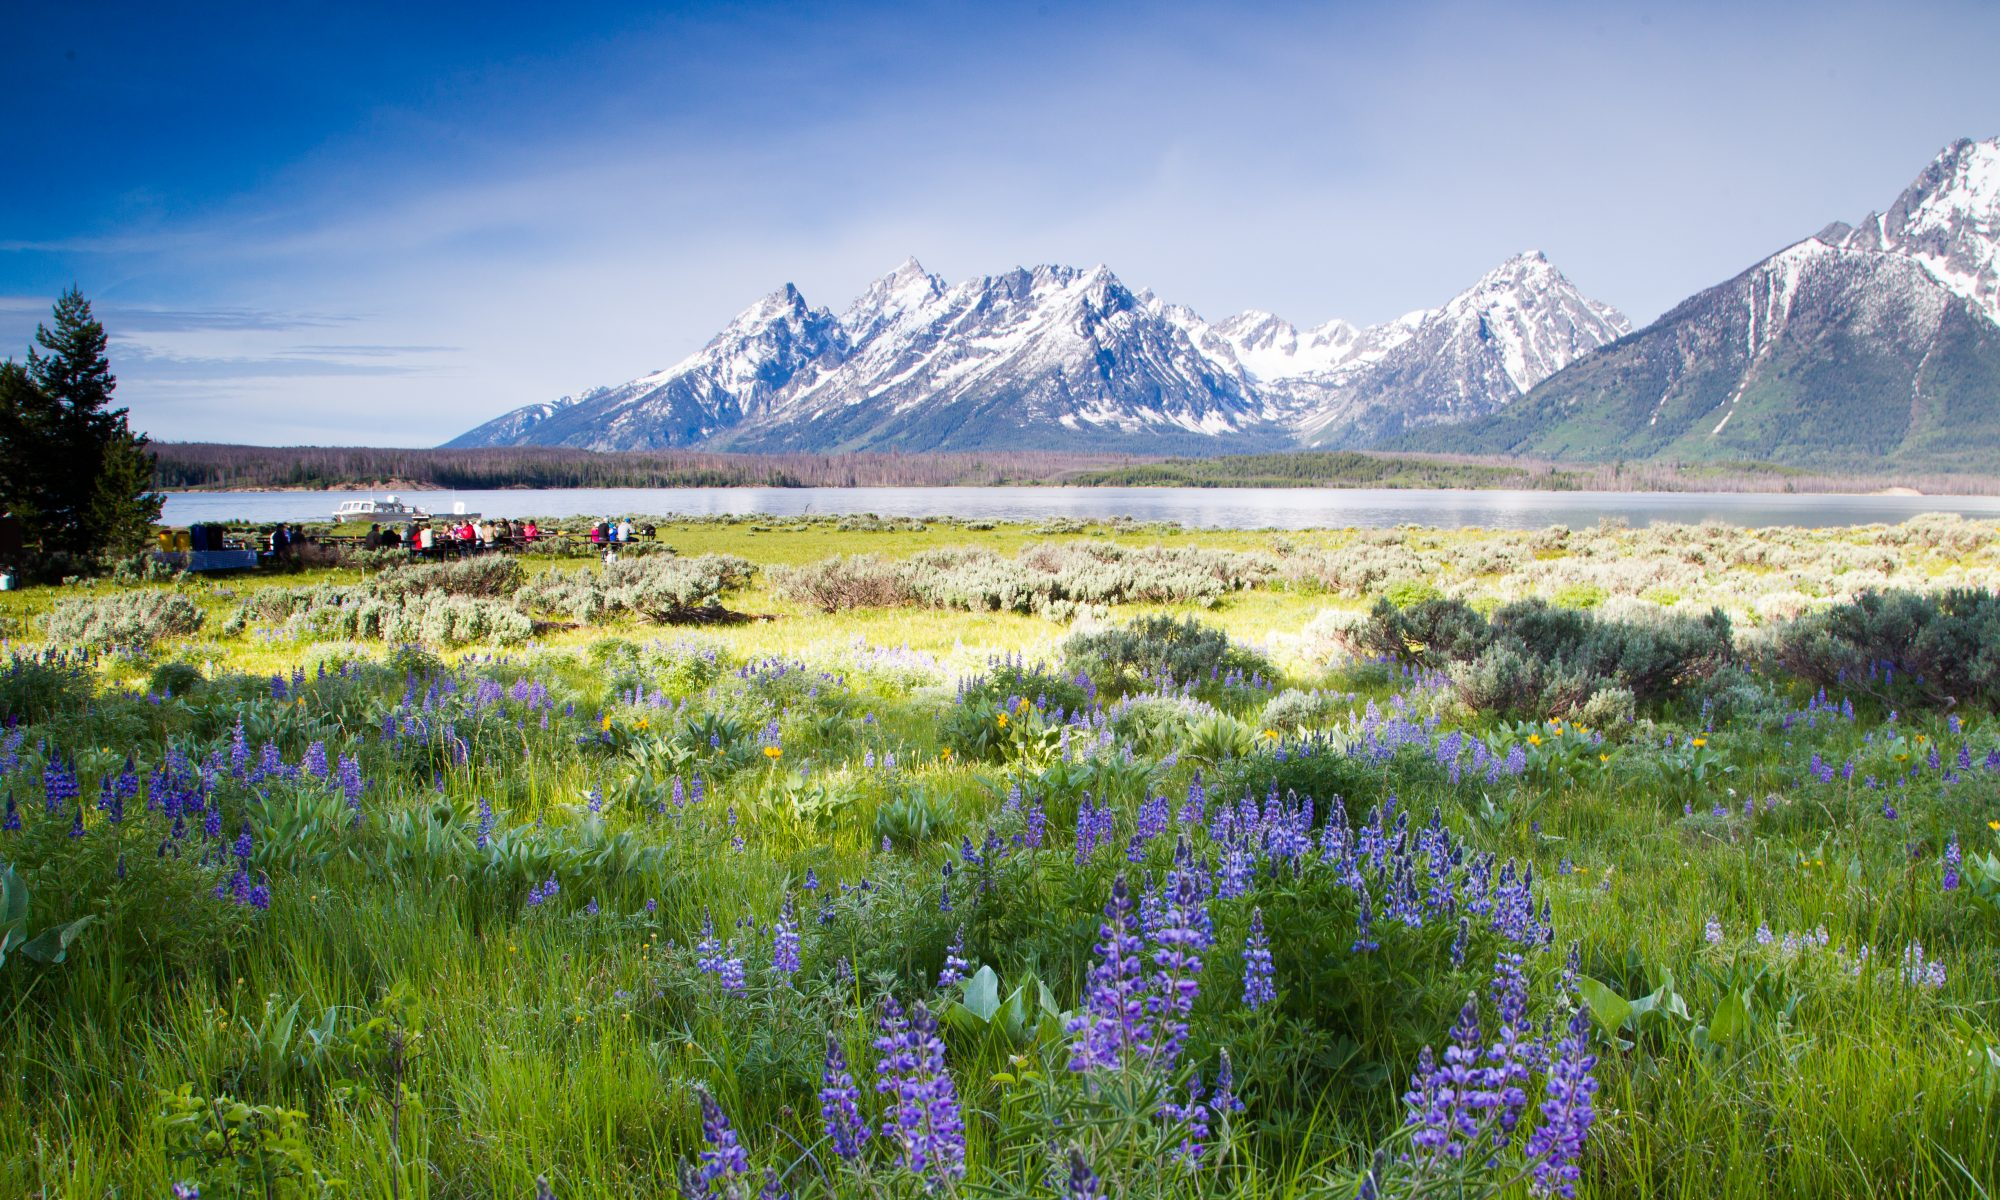 Tales from the Tetons